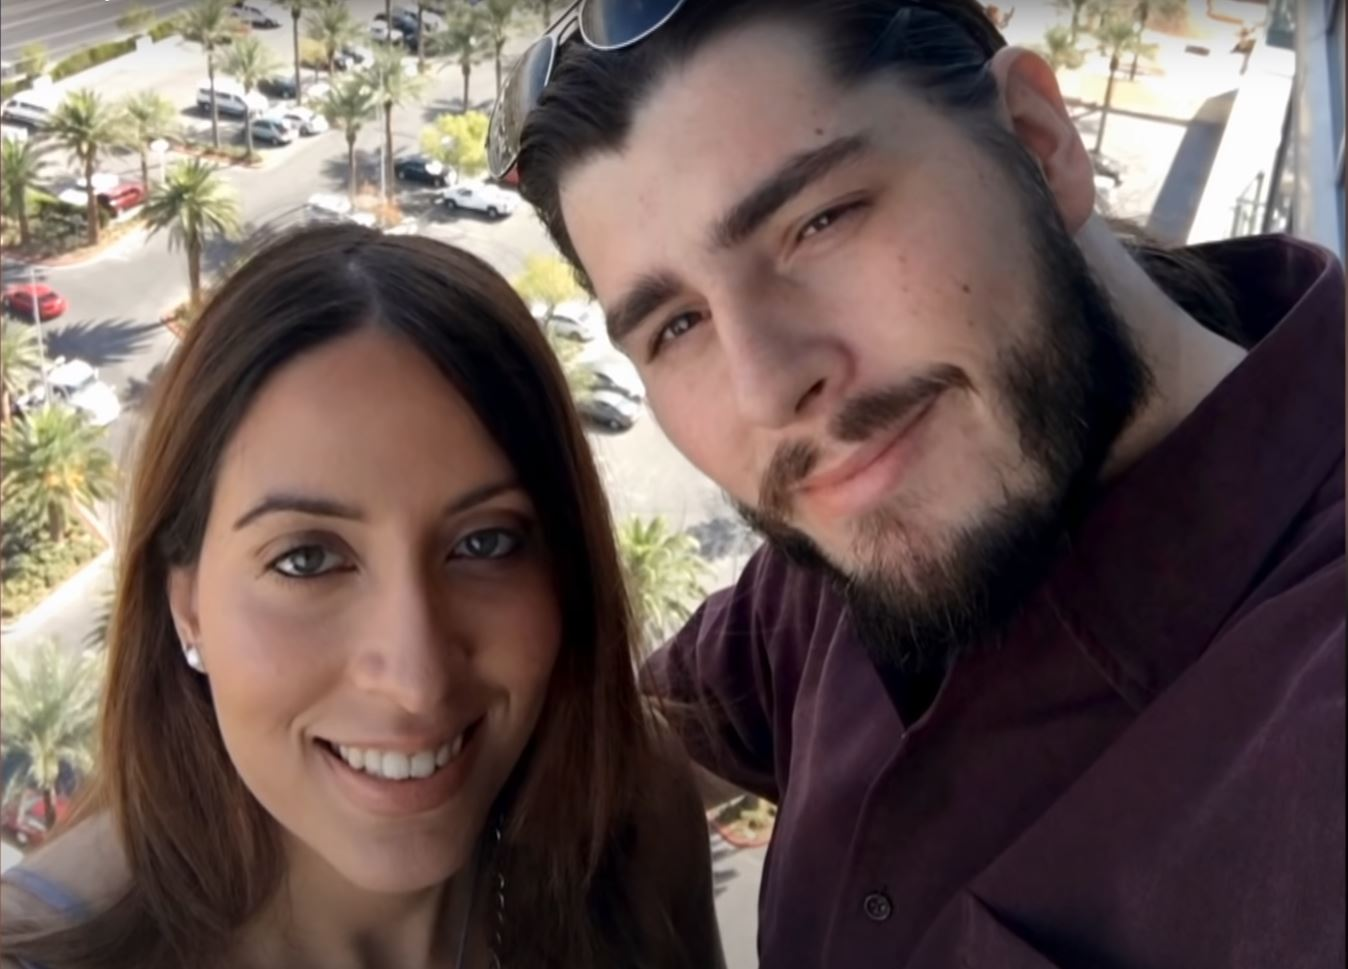 Amira and Andrew from 90 Day Fiancé